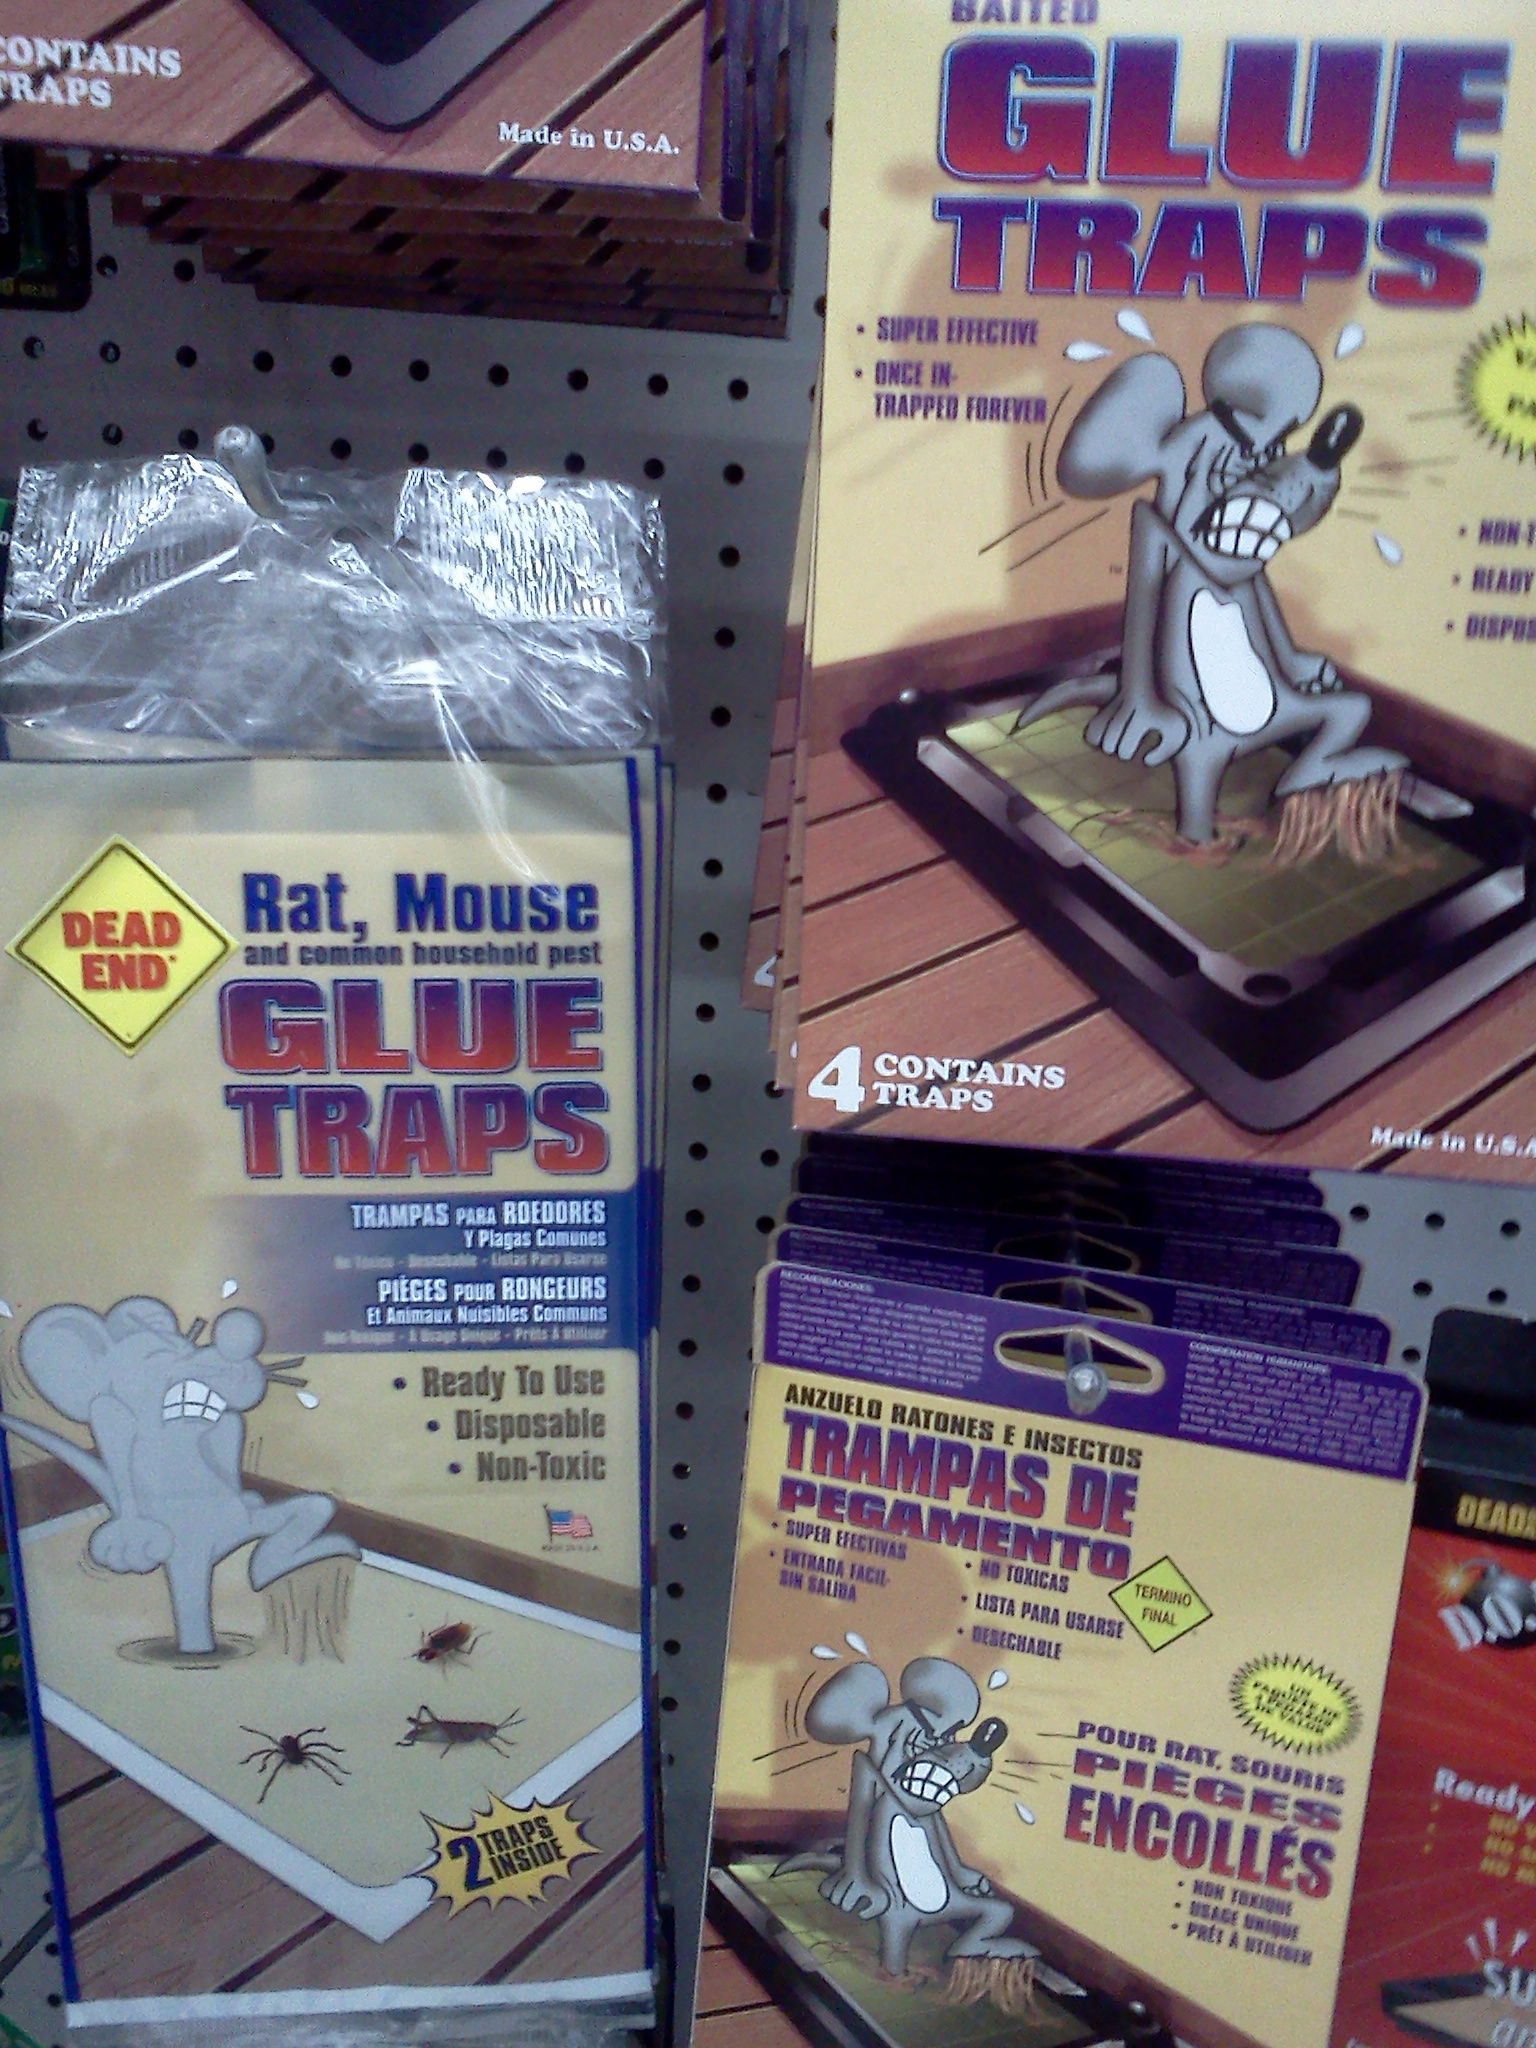 Why You Should Never Use a Glue Trap | peta2